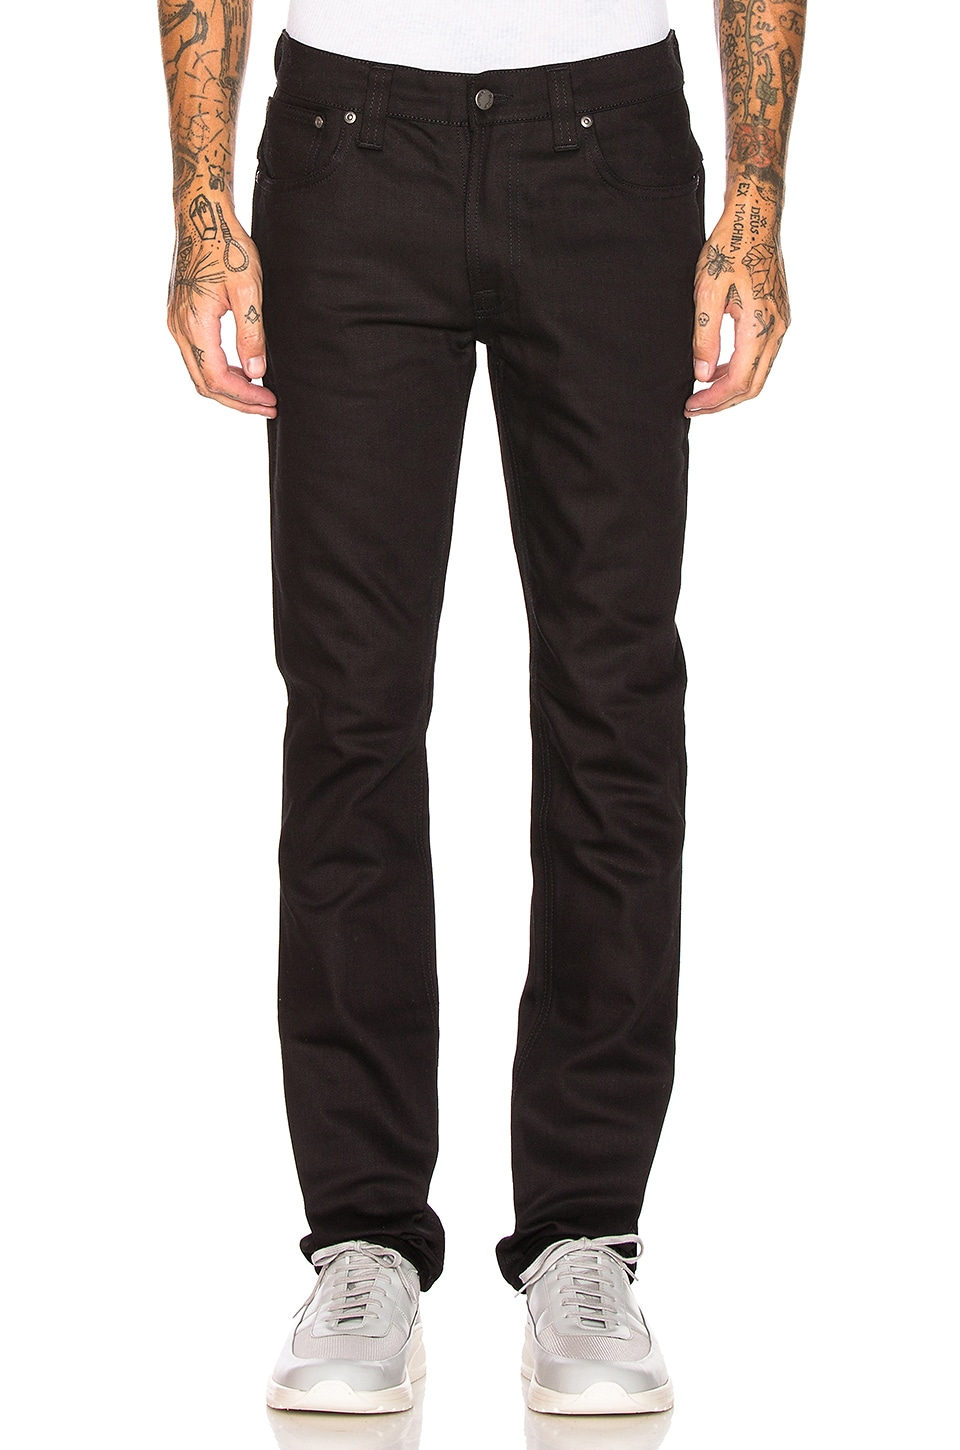 Nudie Jeans Thin Finn in Org. Dry Cold Black